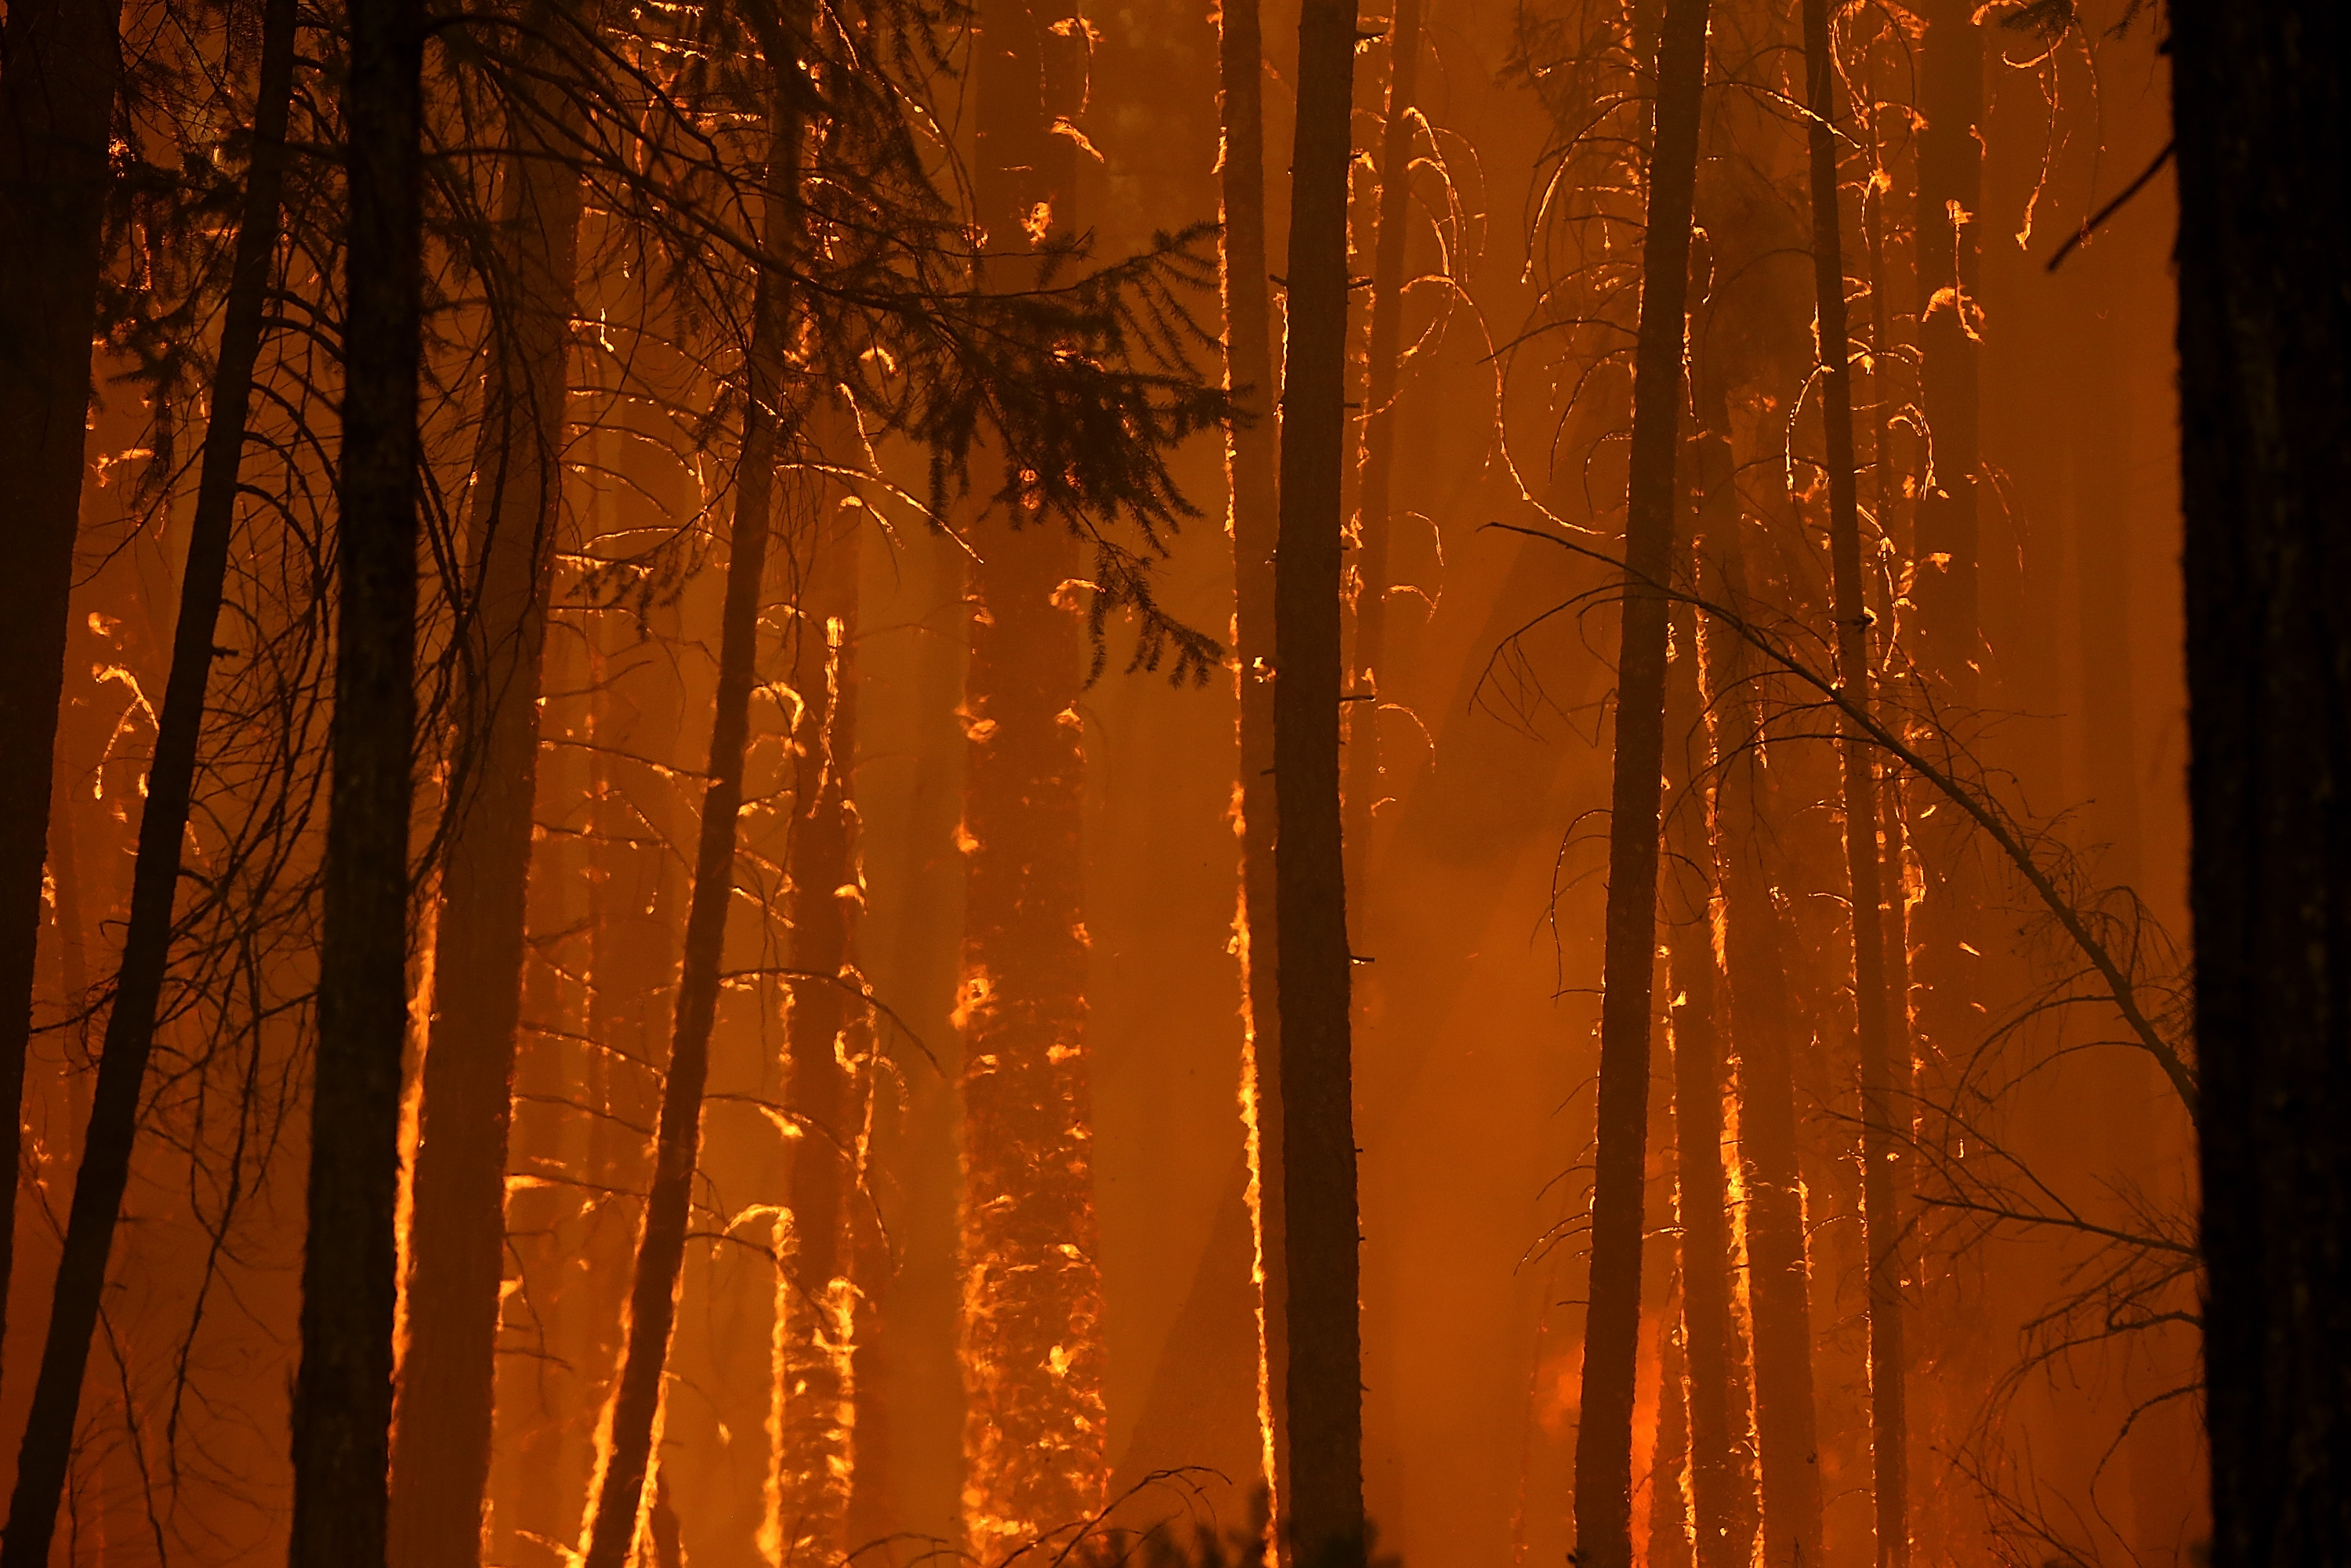 Tuolumne County Resident Indicted for Starting Rim Fire in Yosemite